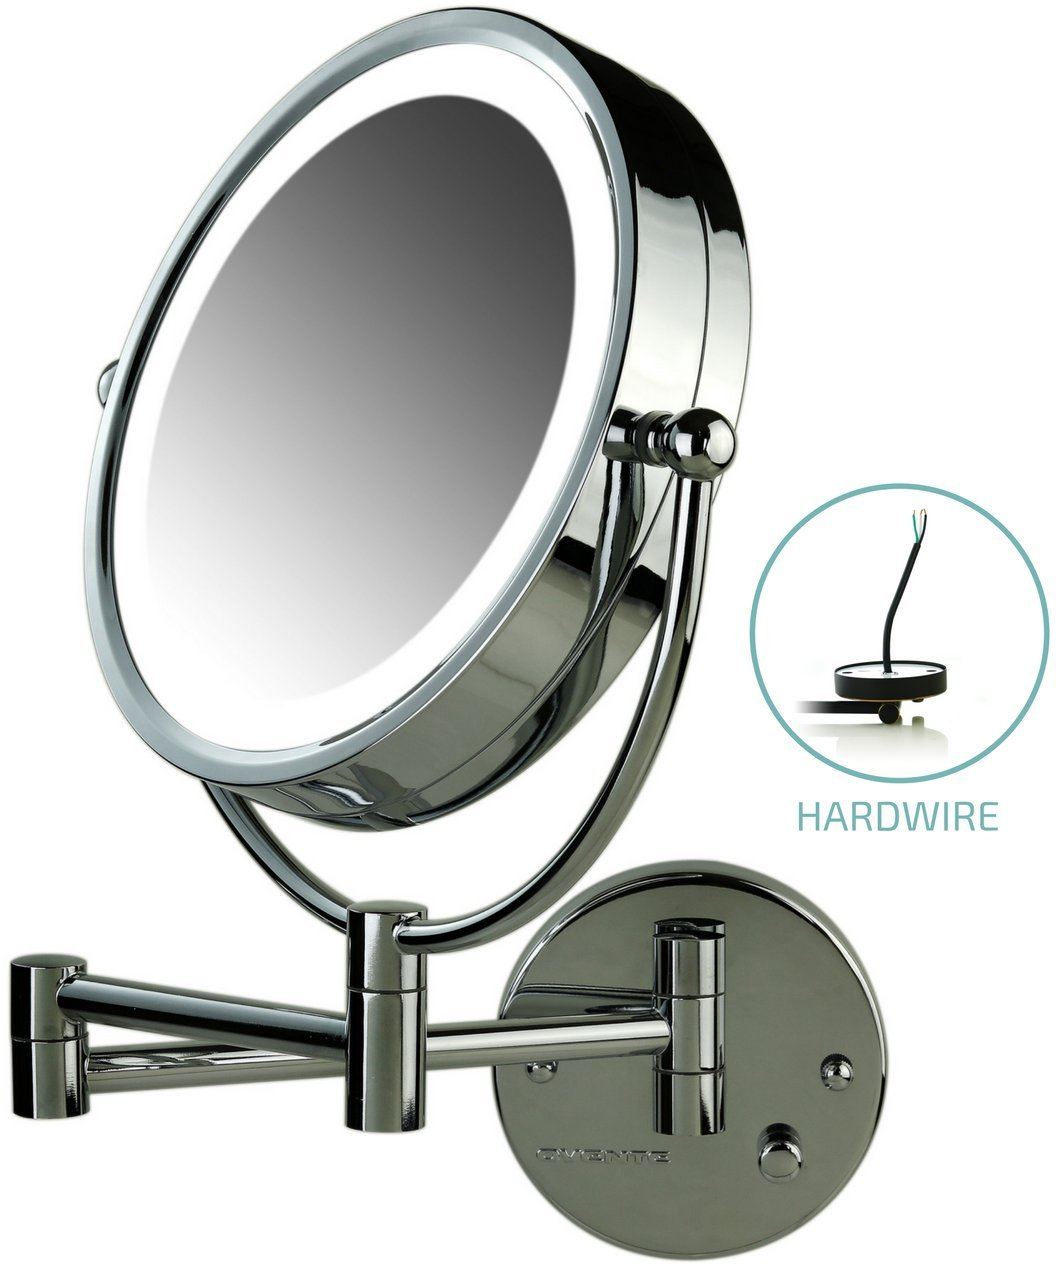 Ovente Lighted Wall Mount Mirror, 8.5 Inch, Dual-Sided 1x/7x Magnification, Hardwired Electrical Connection, Natural White LED Lights, 9-Watts, Polished Chrome (MPWD3185CH1X7X) by Ovente (Image #1)